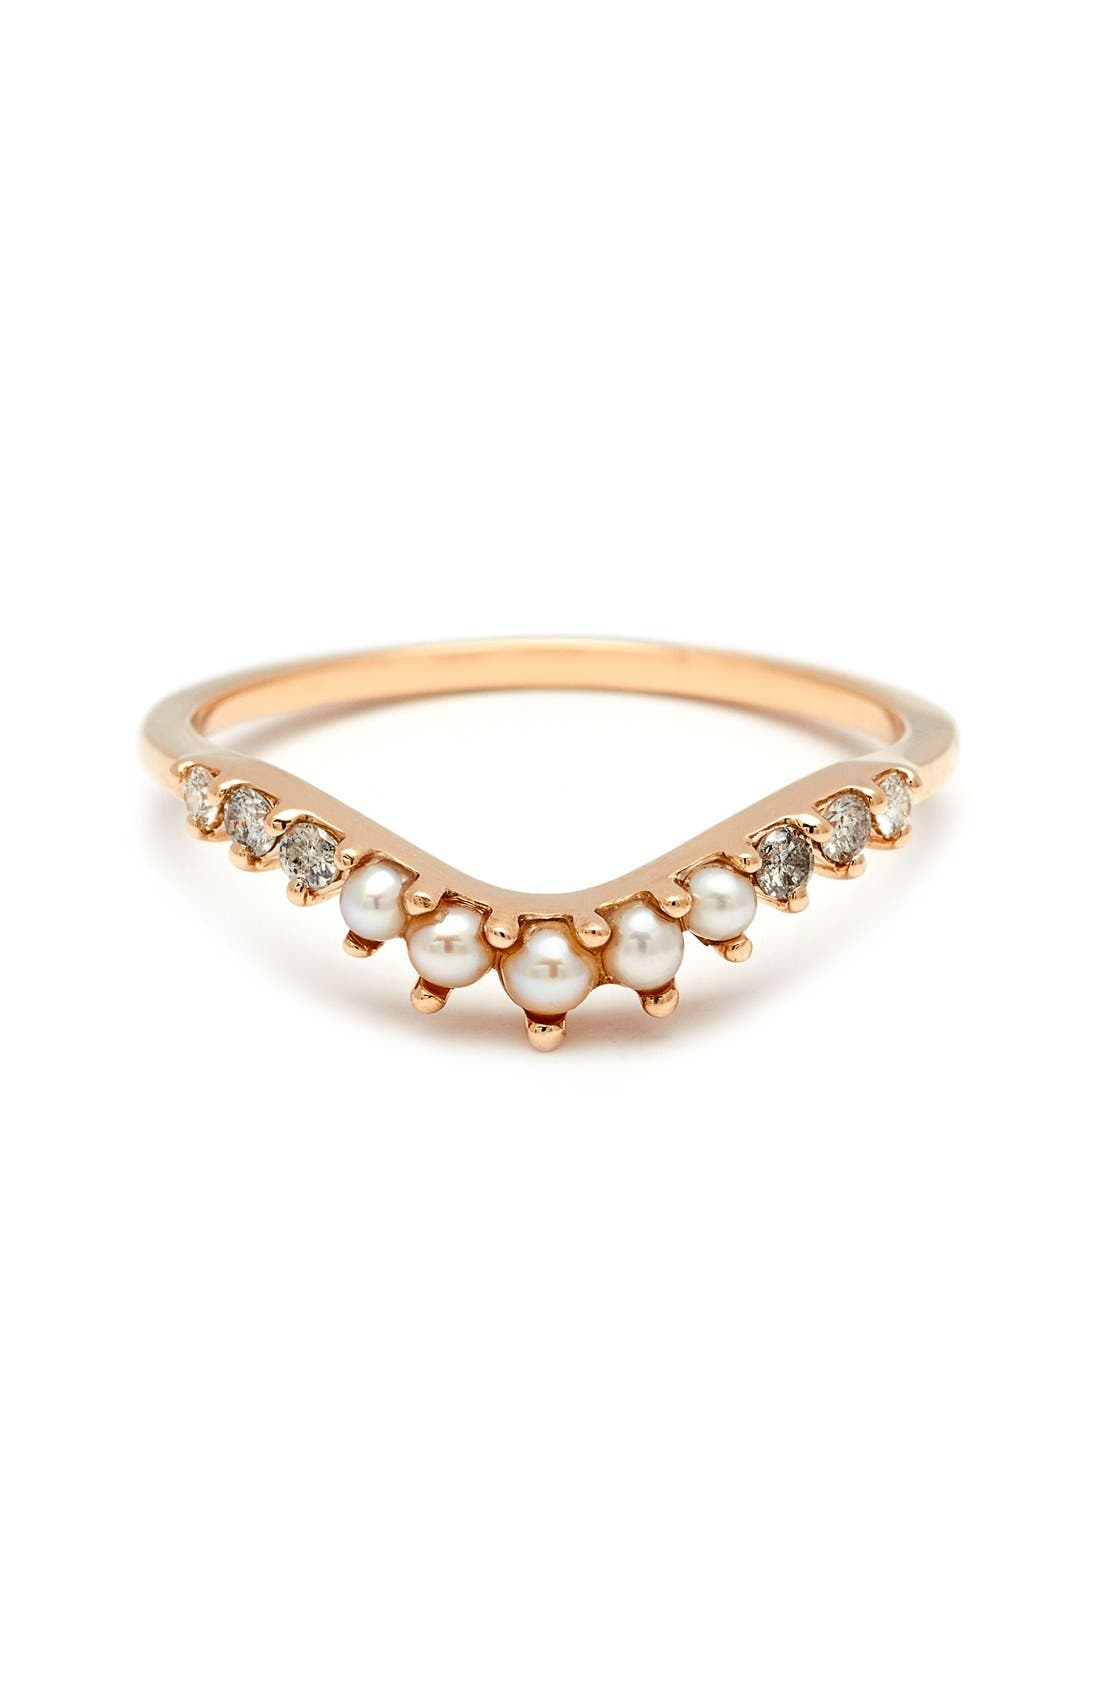 Anna Sheffield 'Tiara Curve' Diamond & Seed Pearl Ring